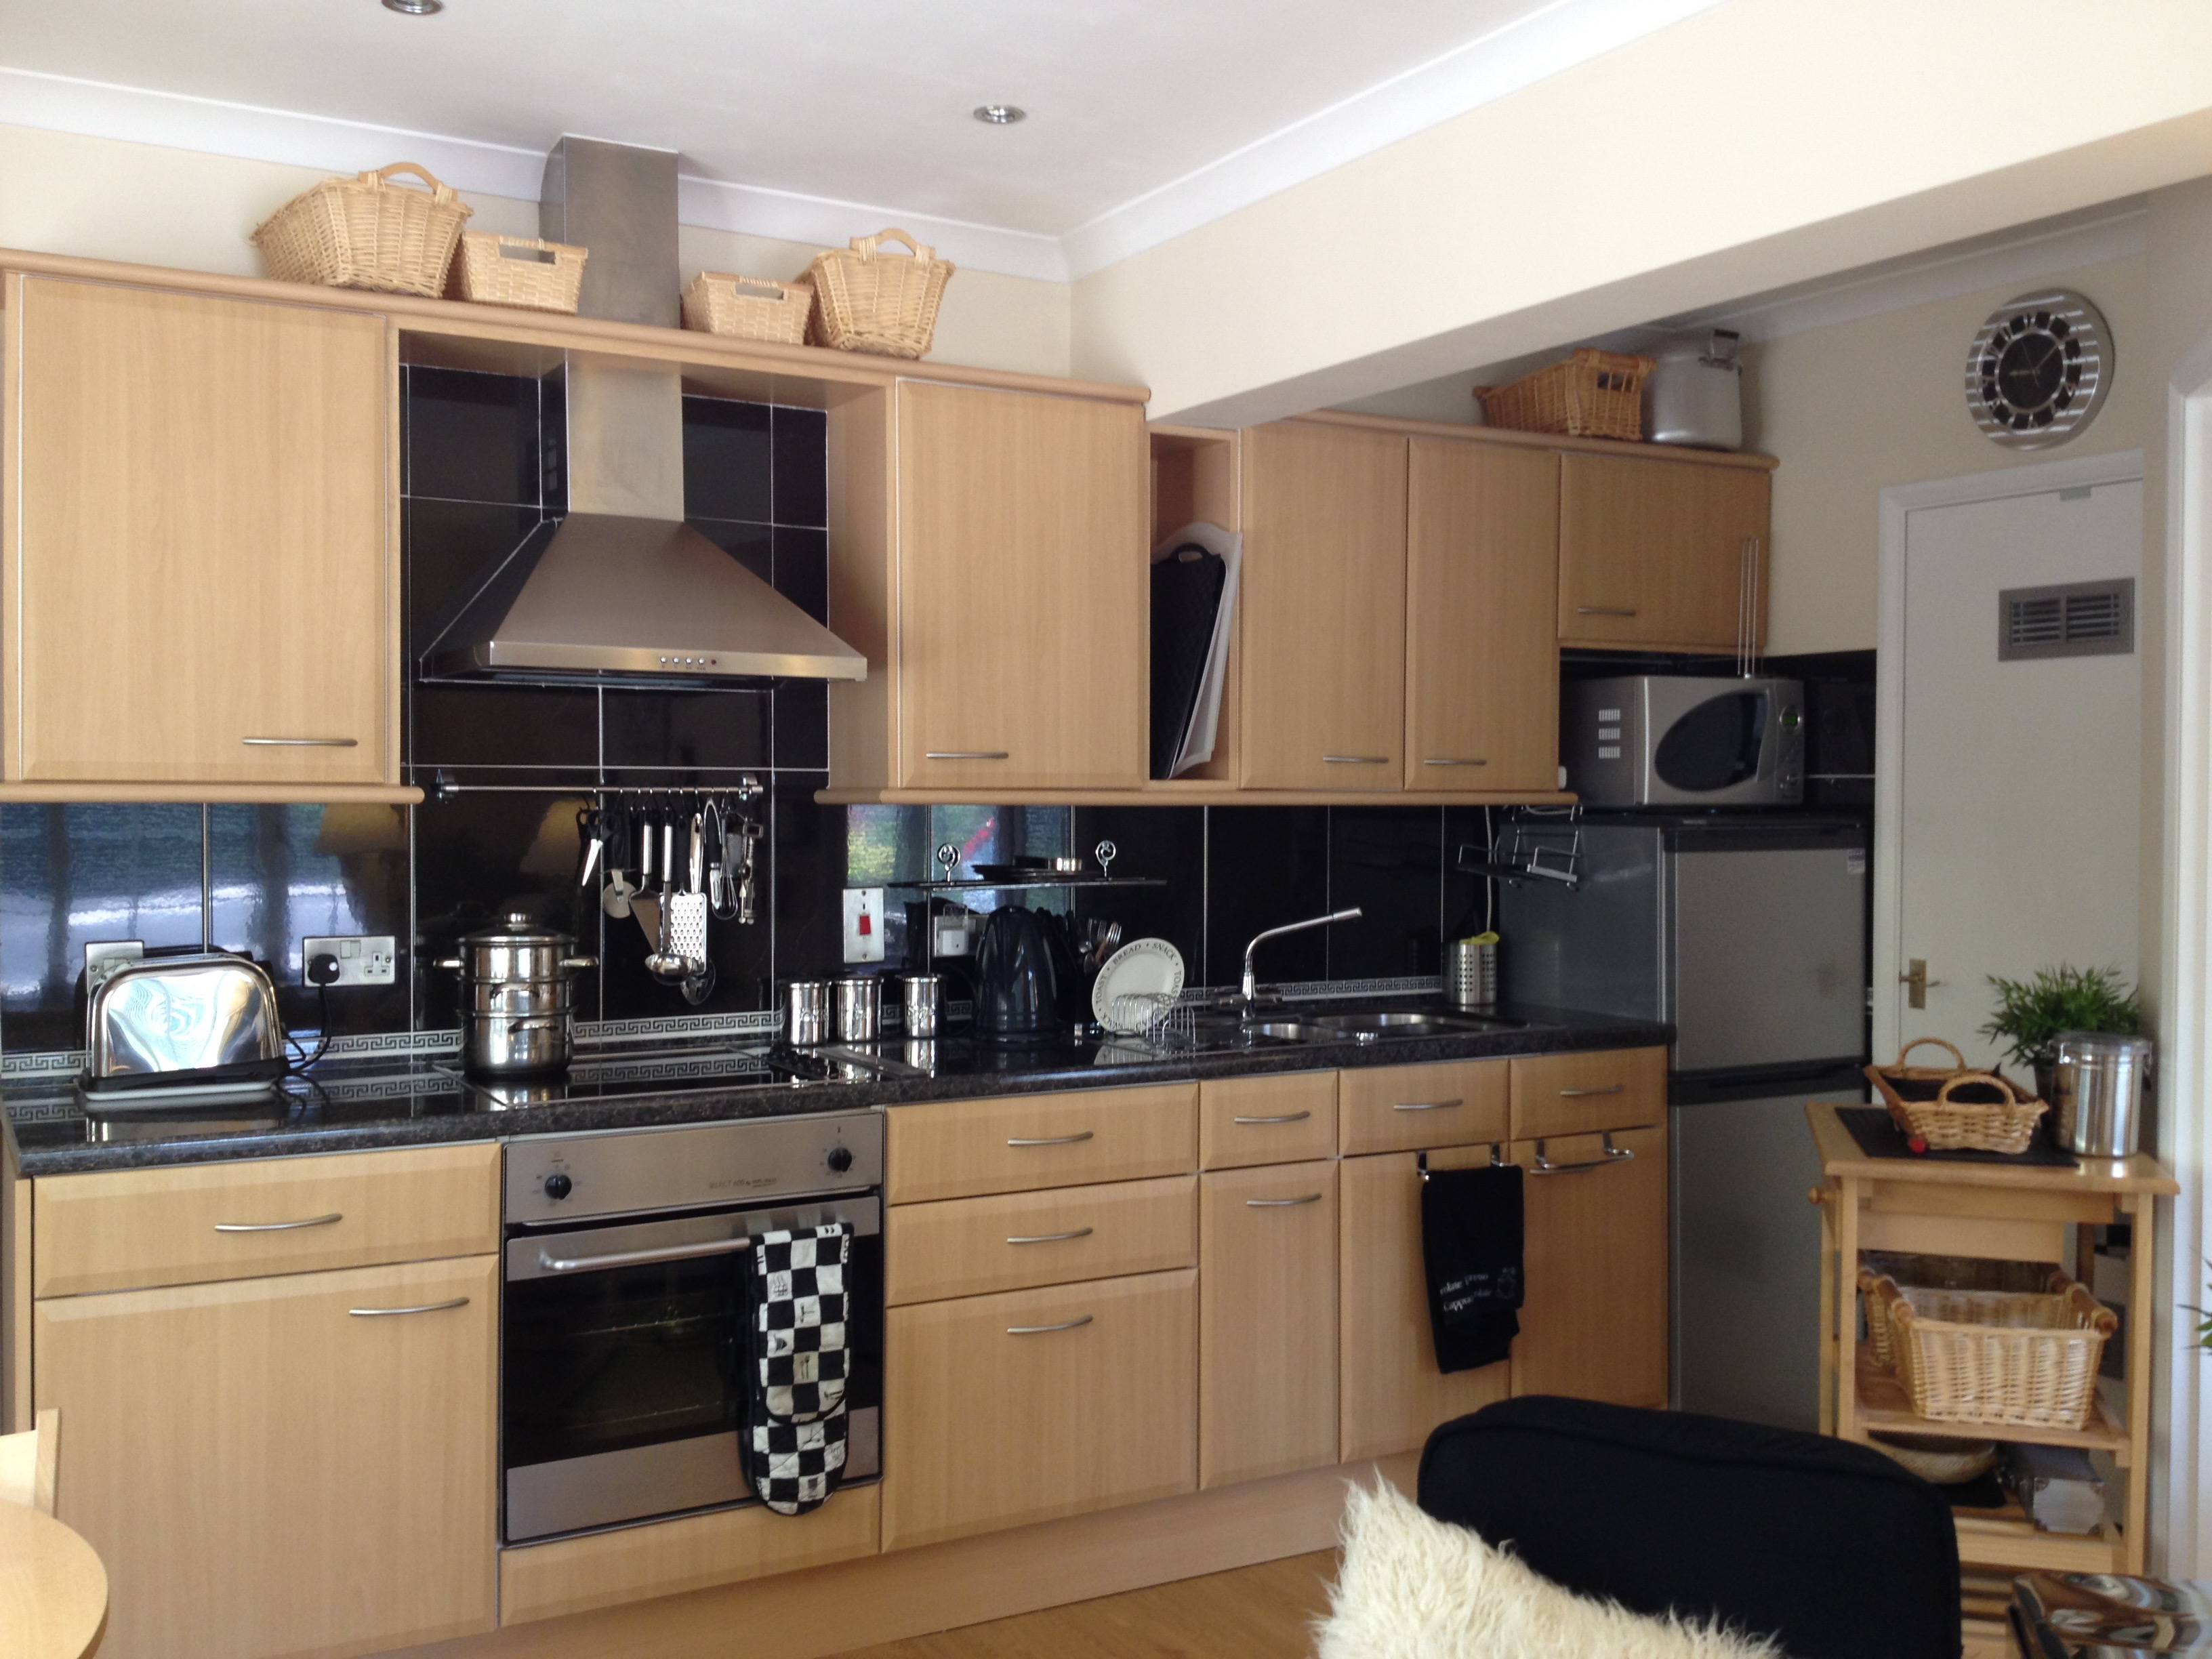 Kitchen Self catering countryside apartment